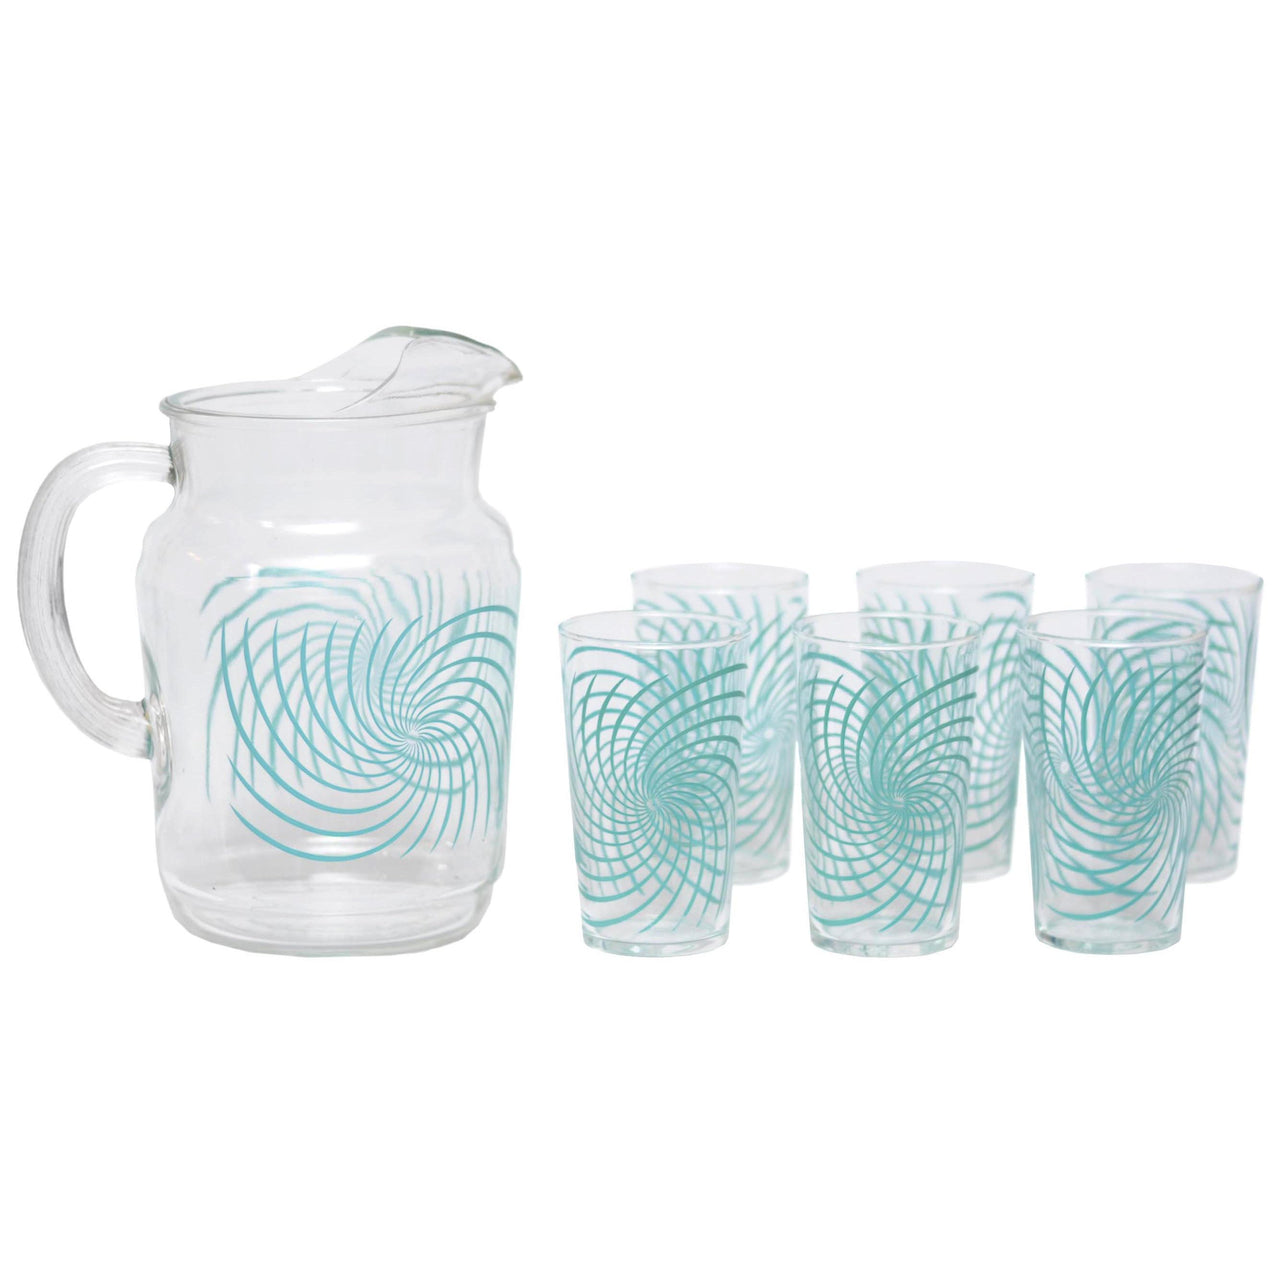 Vintage Federal Glass Turquoise Swirl Pitcher Set, The Hour Shop